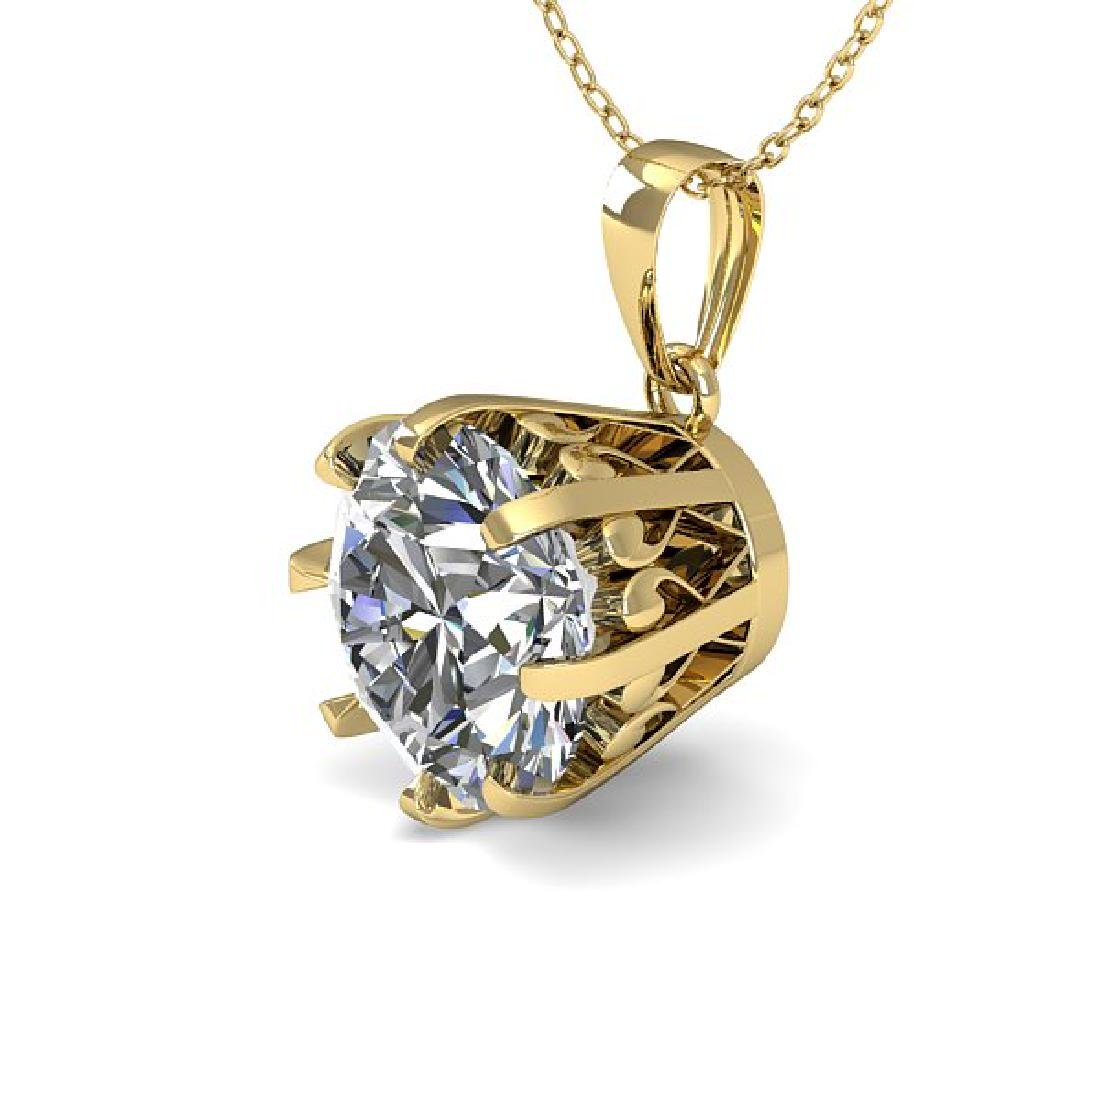 1 CTW VS/SI Diamond Solitaire Necklace 14K Yellow Gold